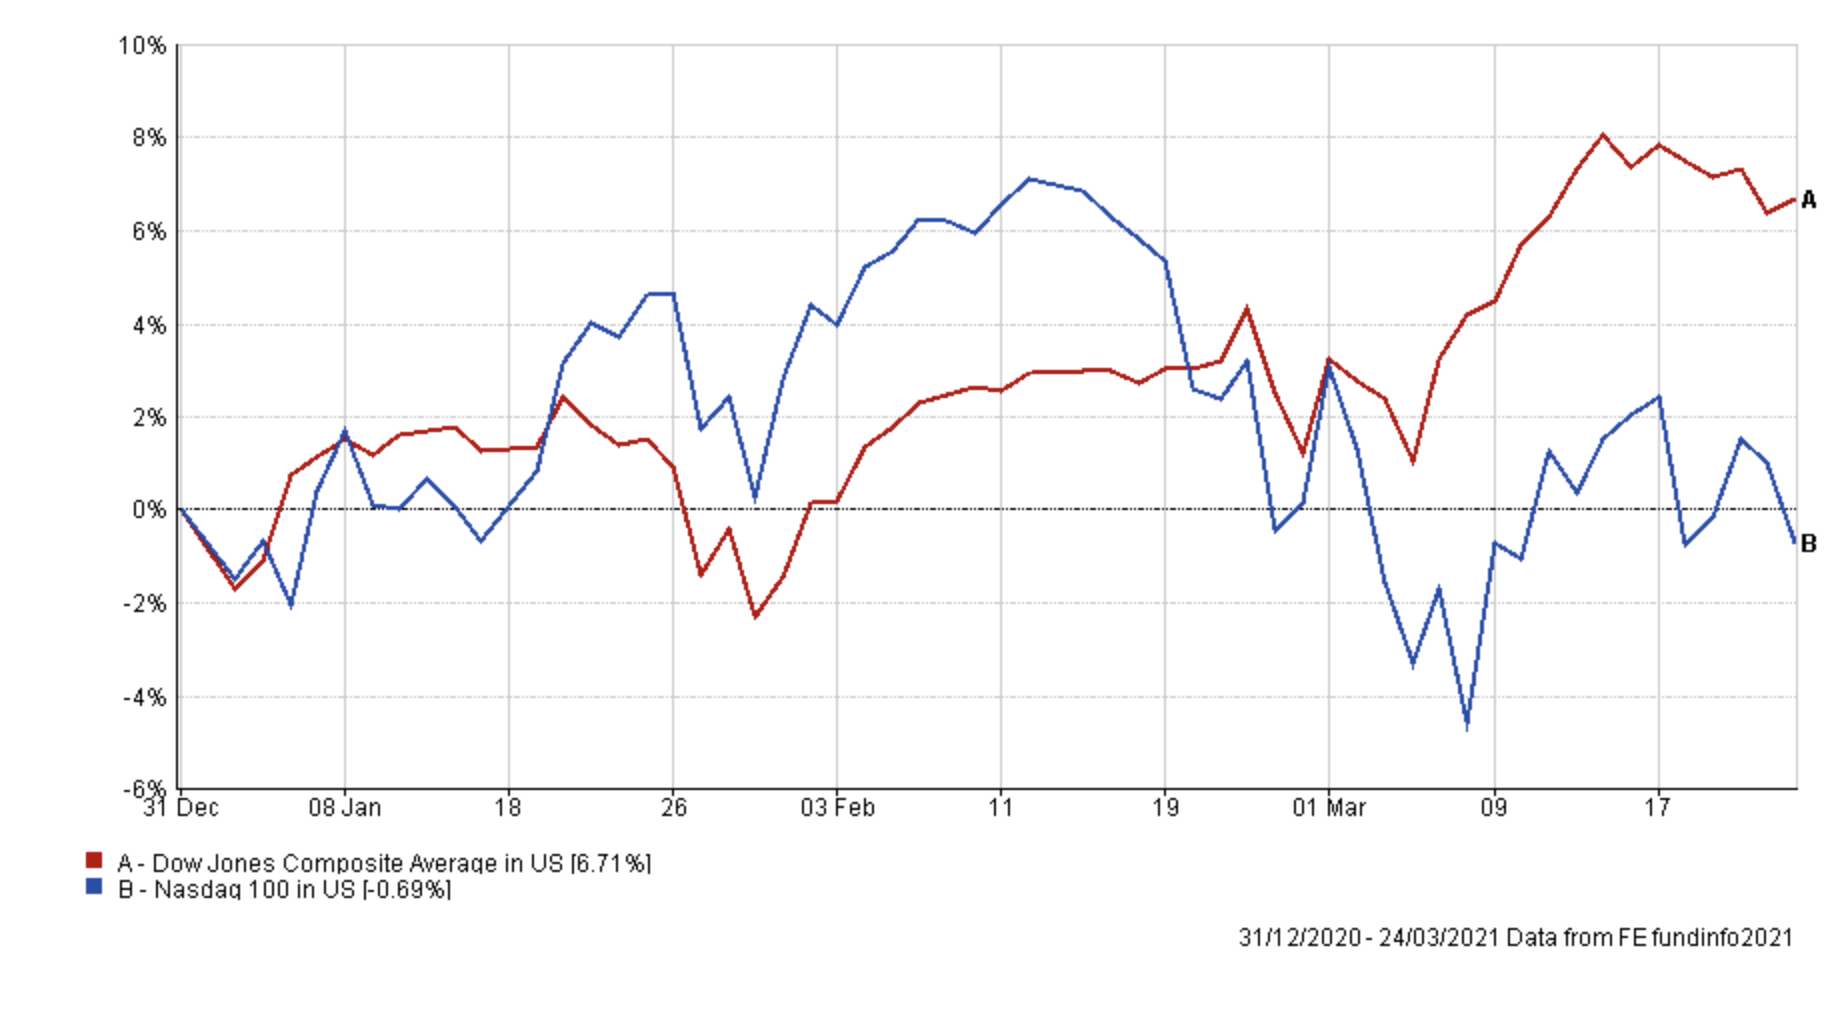 Nasdaq 100 vs Dow Jones